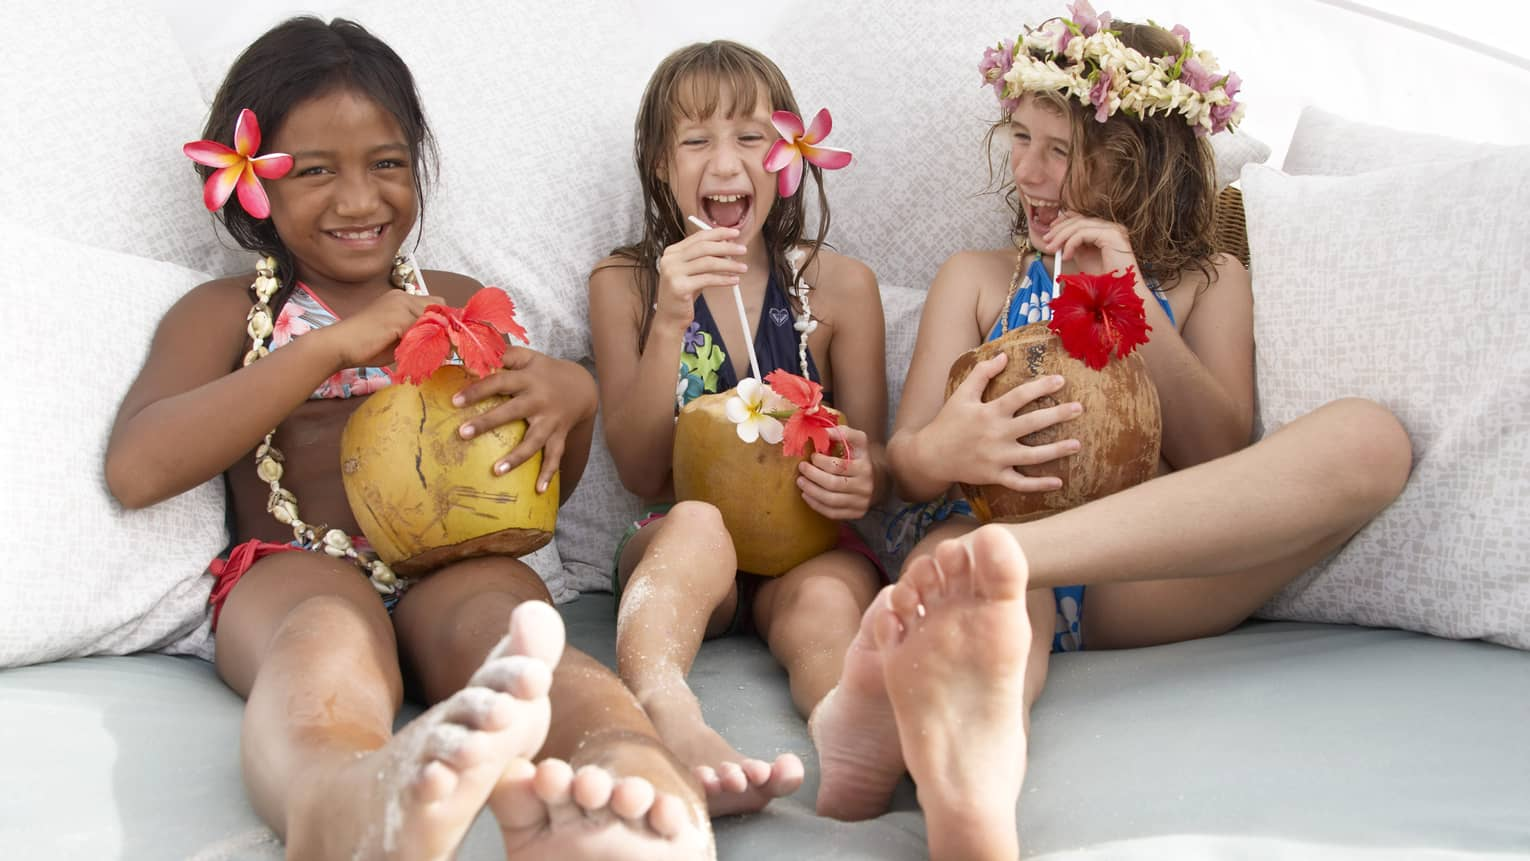 Three young girls laughing with tropical drinks, tropical flowers in their hair